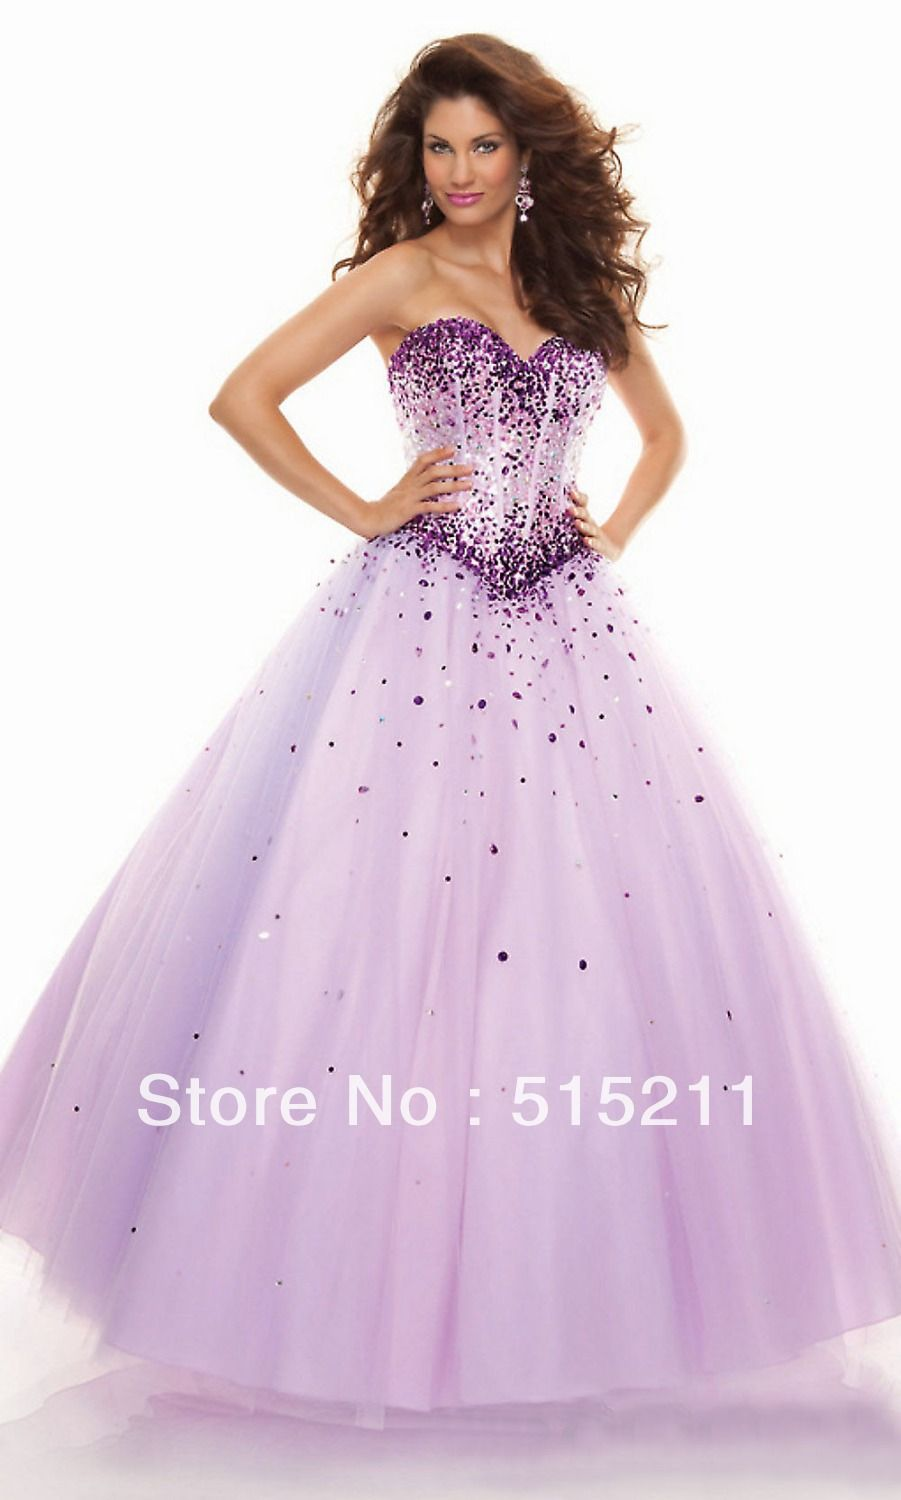 Mori Lee 93012 | Prom, Google and Sweet 16